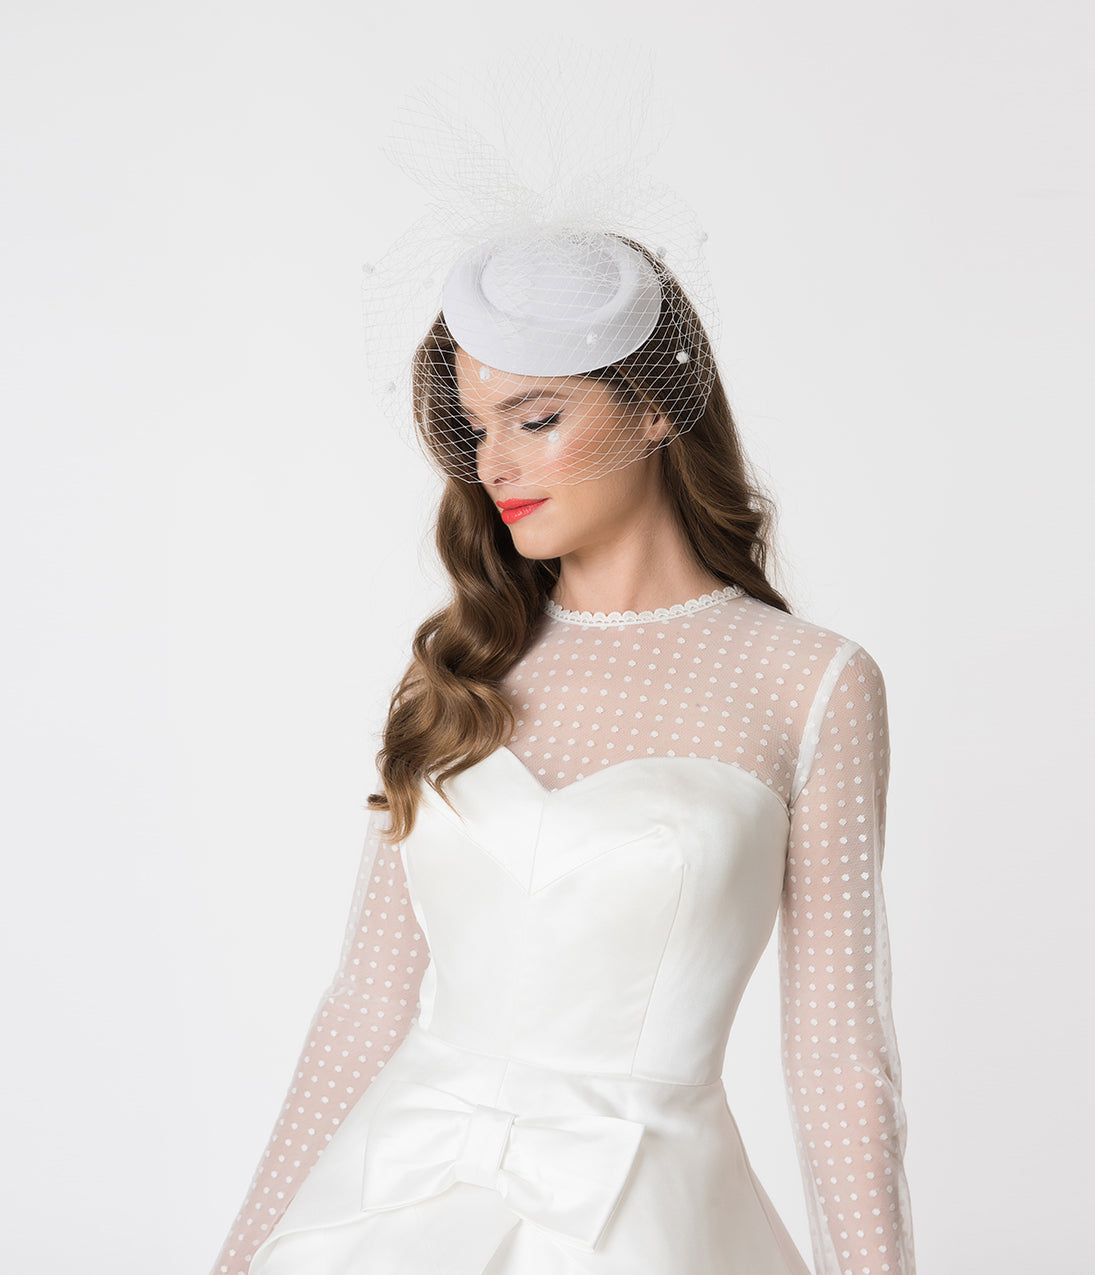 Vintage Inspired Wedding Dress | Vintage Style Wedding Dresses Unique Vintage White Netted Flair Fascinator $32.00 AT vintagedancer.com